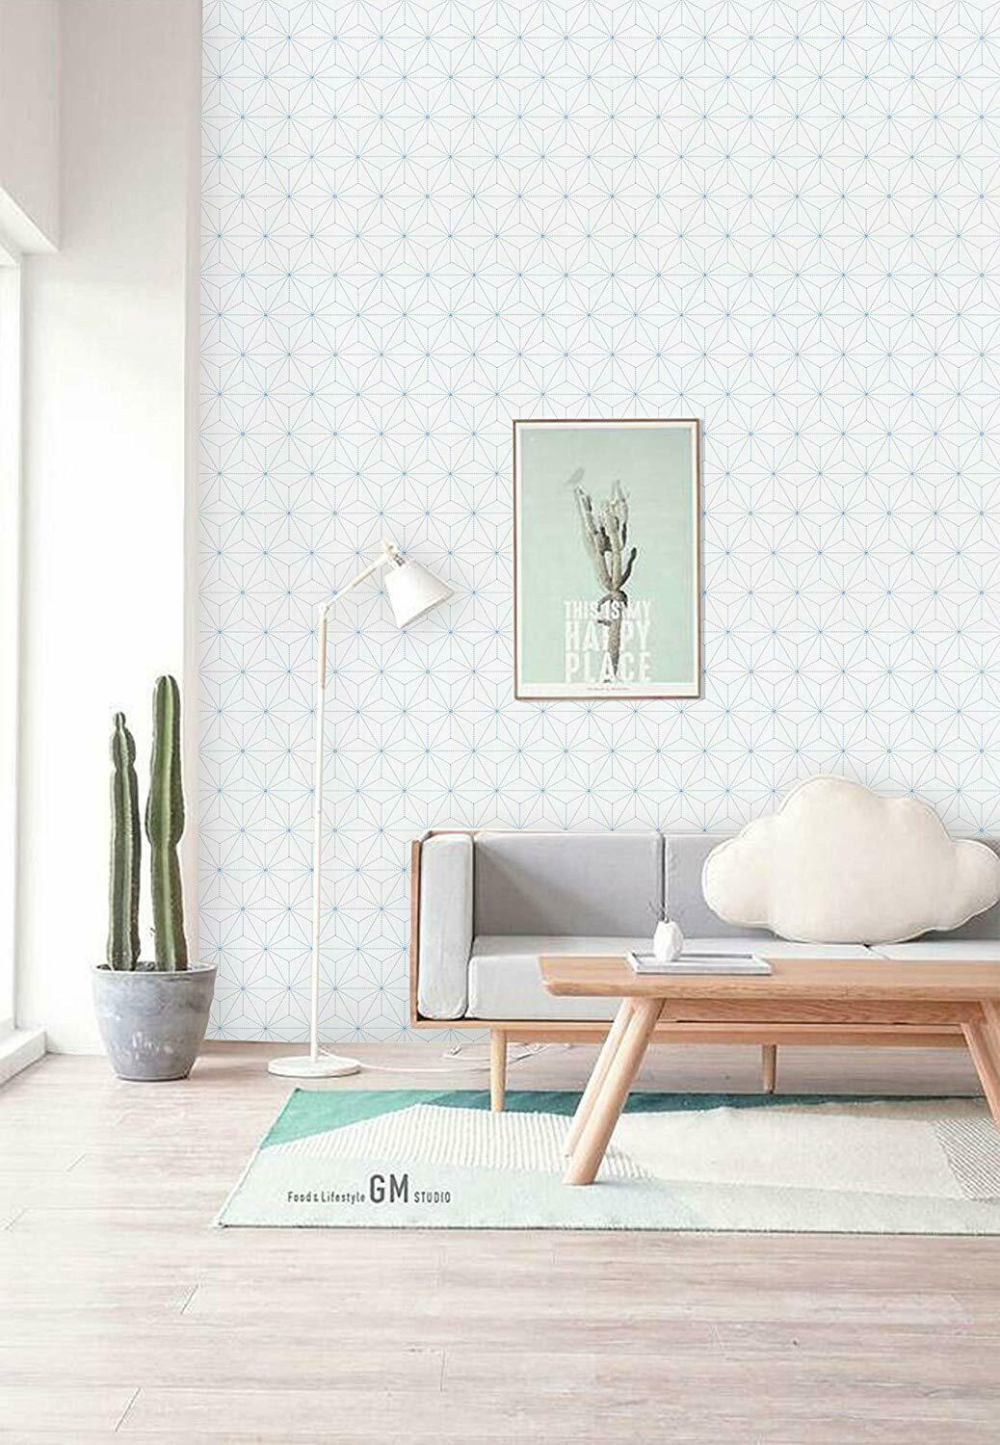 White Blue Geometric Peel And Stick Wallpaper Contact Paper Stripe Self Adhesive In 2020 Peel And Stick Wallpaper Wallpaper Dressing Table With Drawers